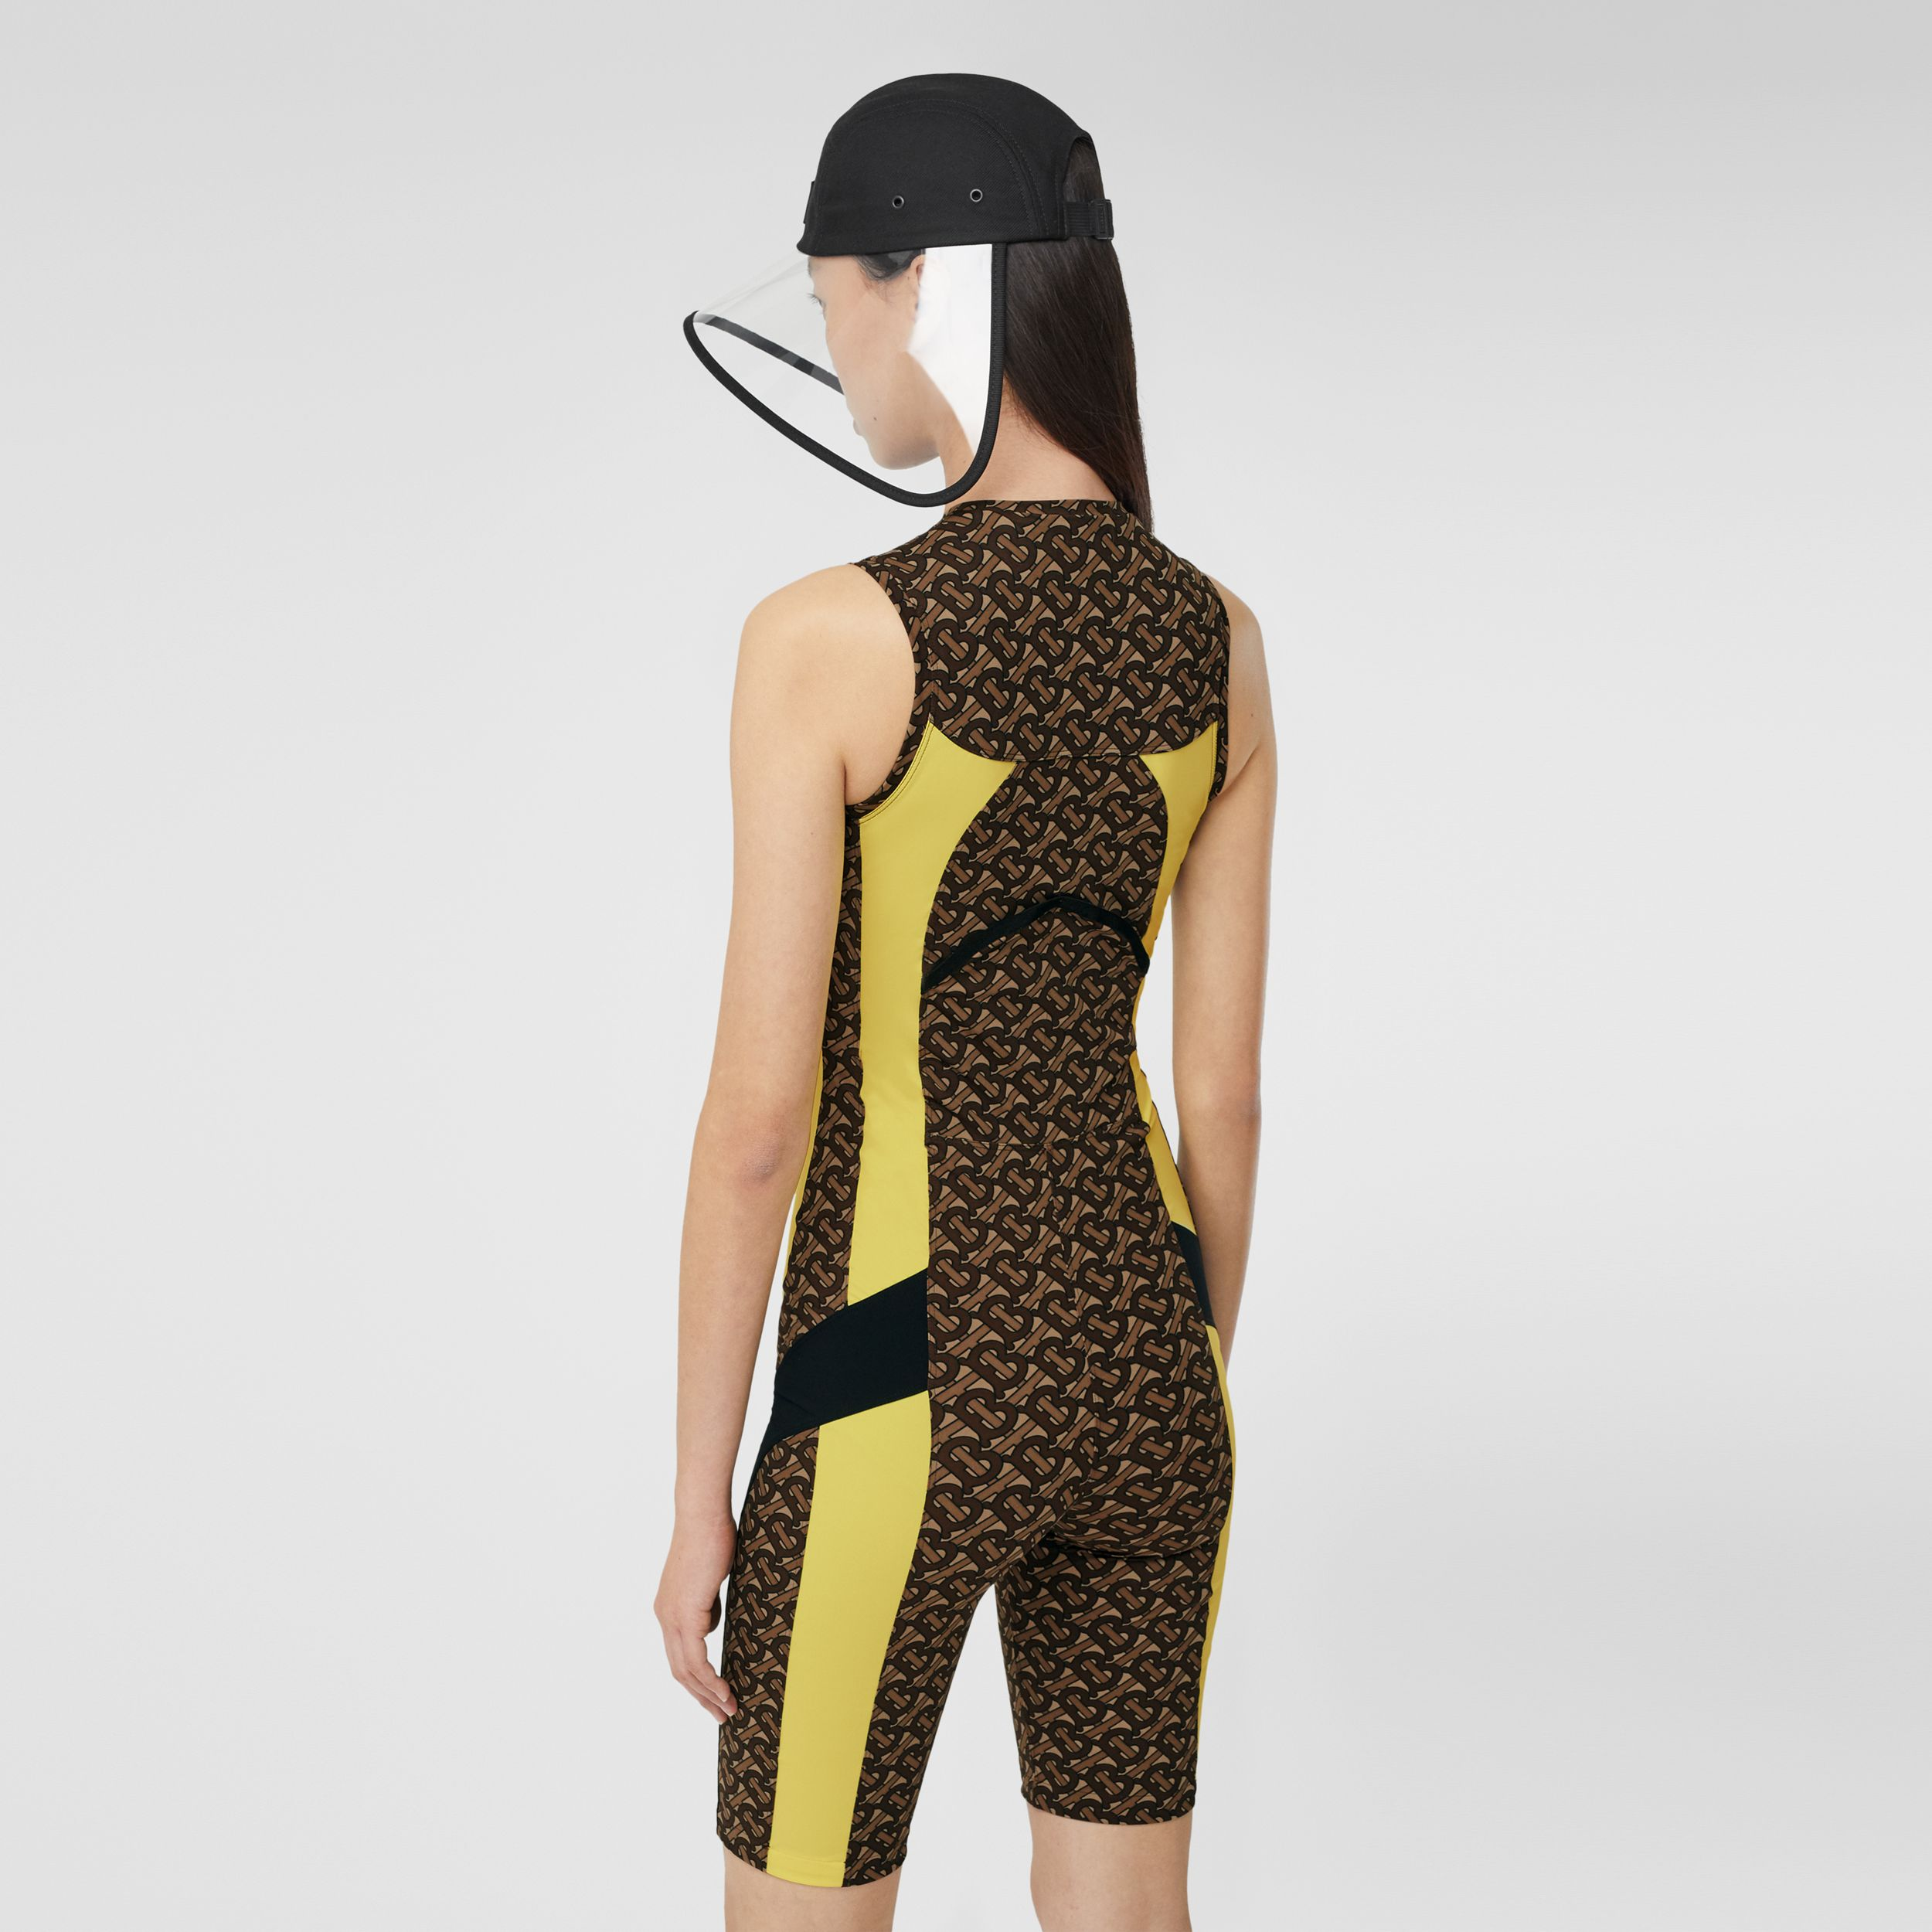 Colour Block Monogram Print Unitard in Bridle Brown - Women | Burberry - 3